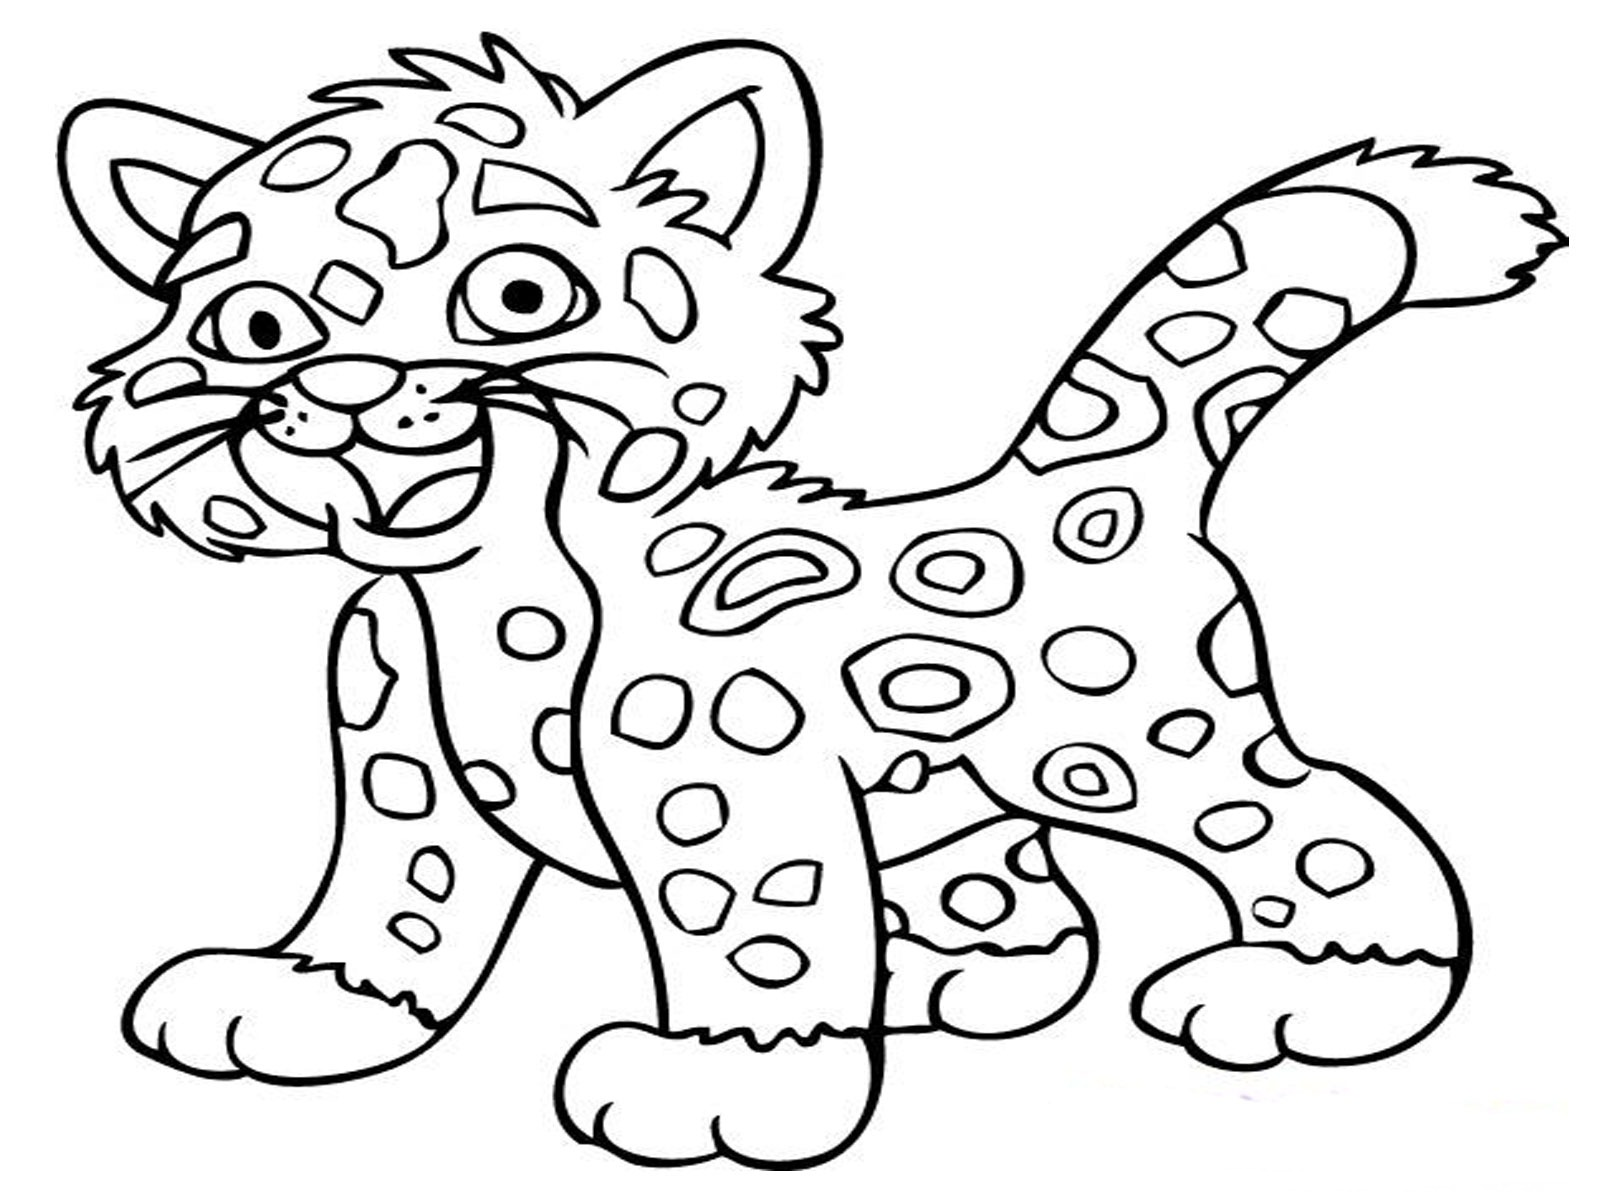 animals coloring pages - Animal Print Coloring Pages